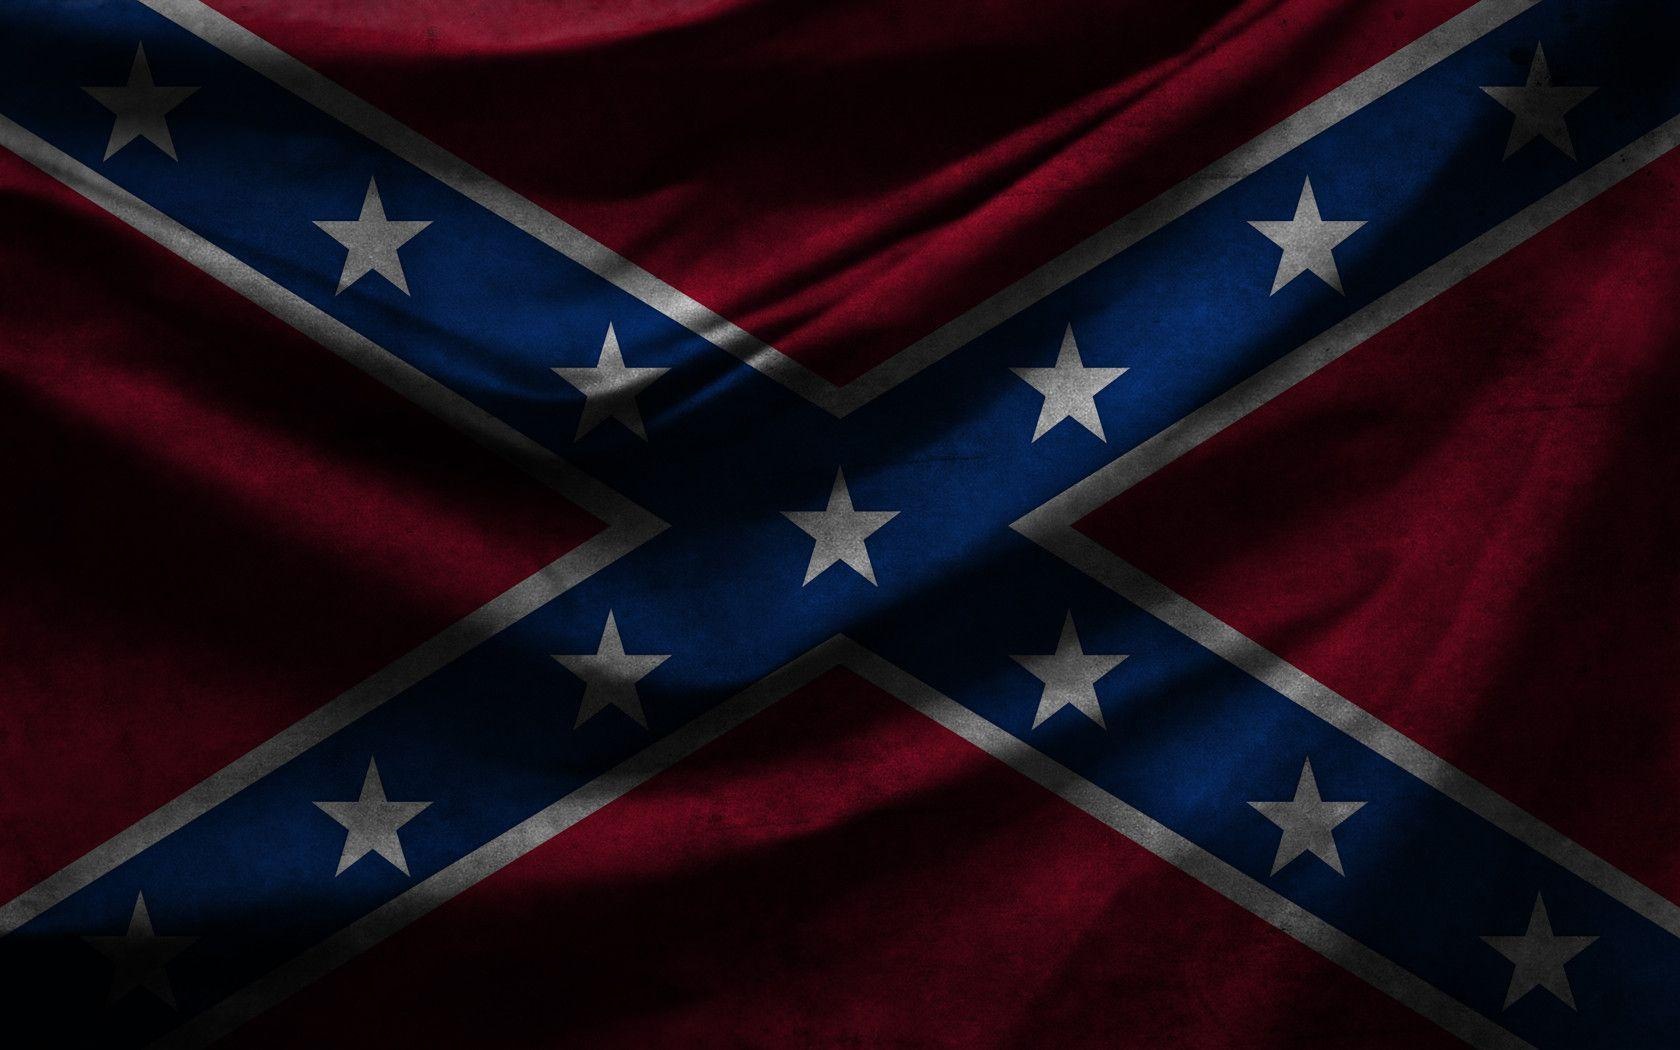 Confederate flag desktop wallpaper | Topics Planet